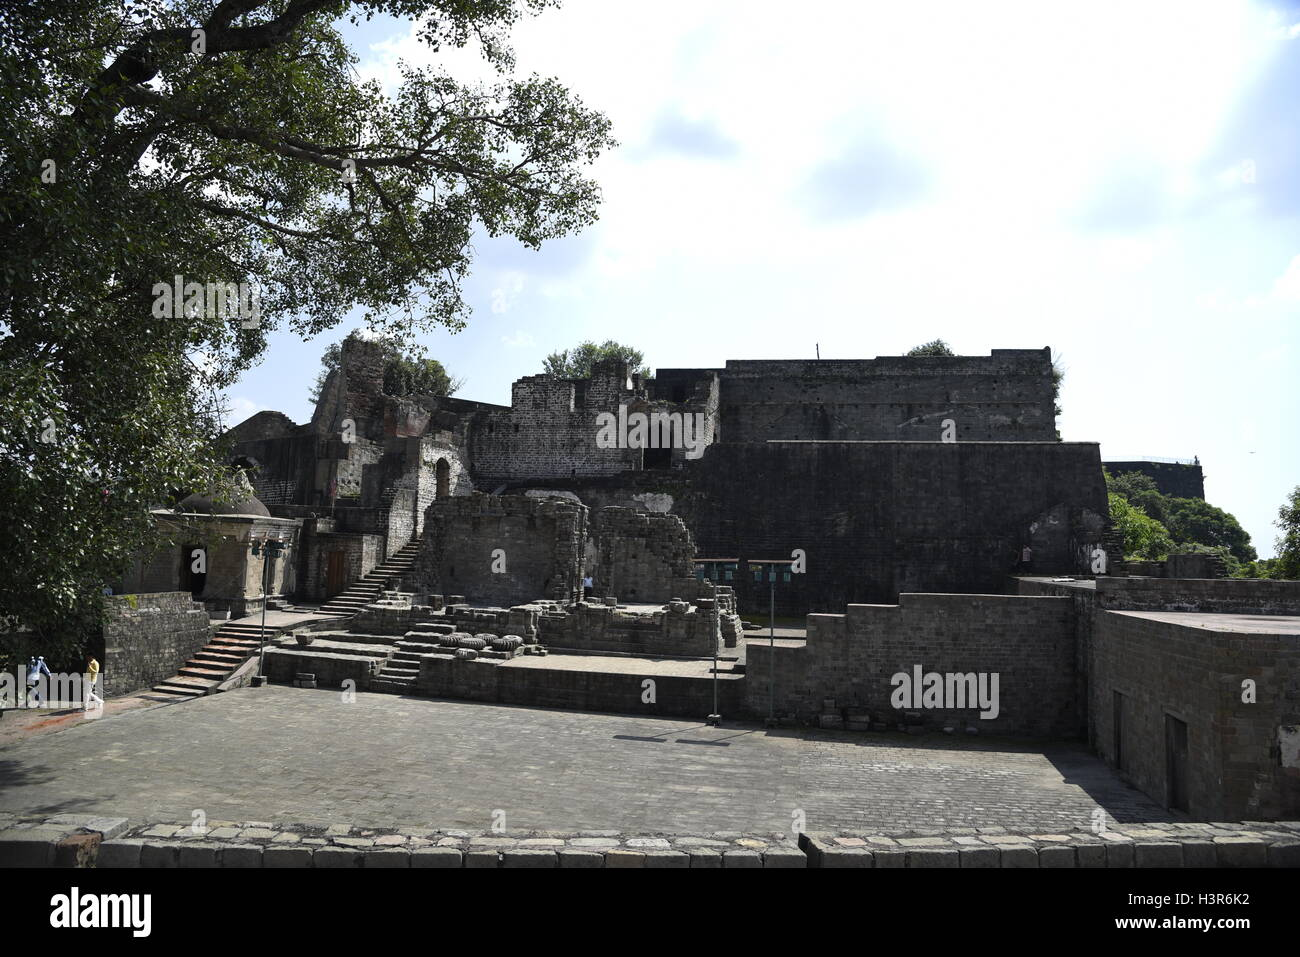 The historical architecture Kangra Fort is located 20 kilometers from the town of Dharamsala on the outskirts of  Kangra, India. Stock Photo